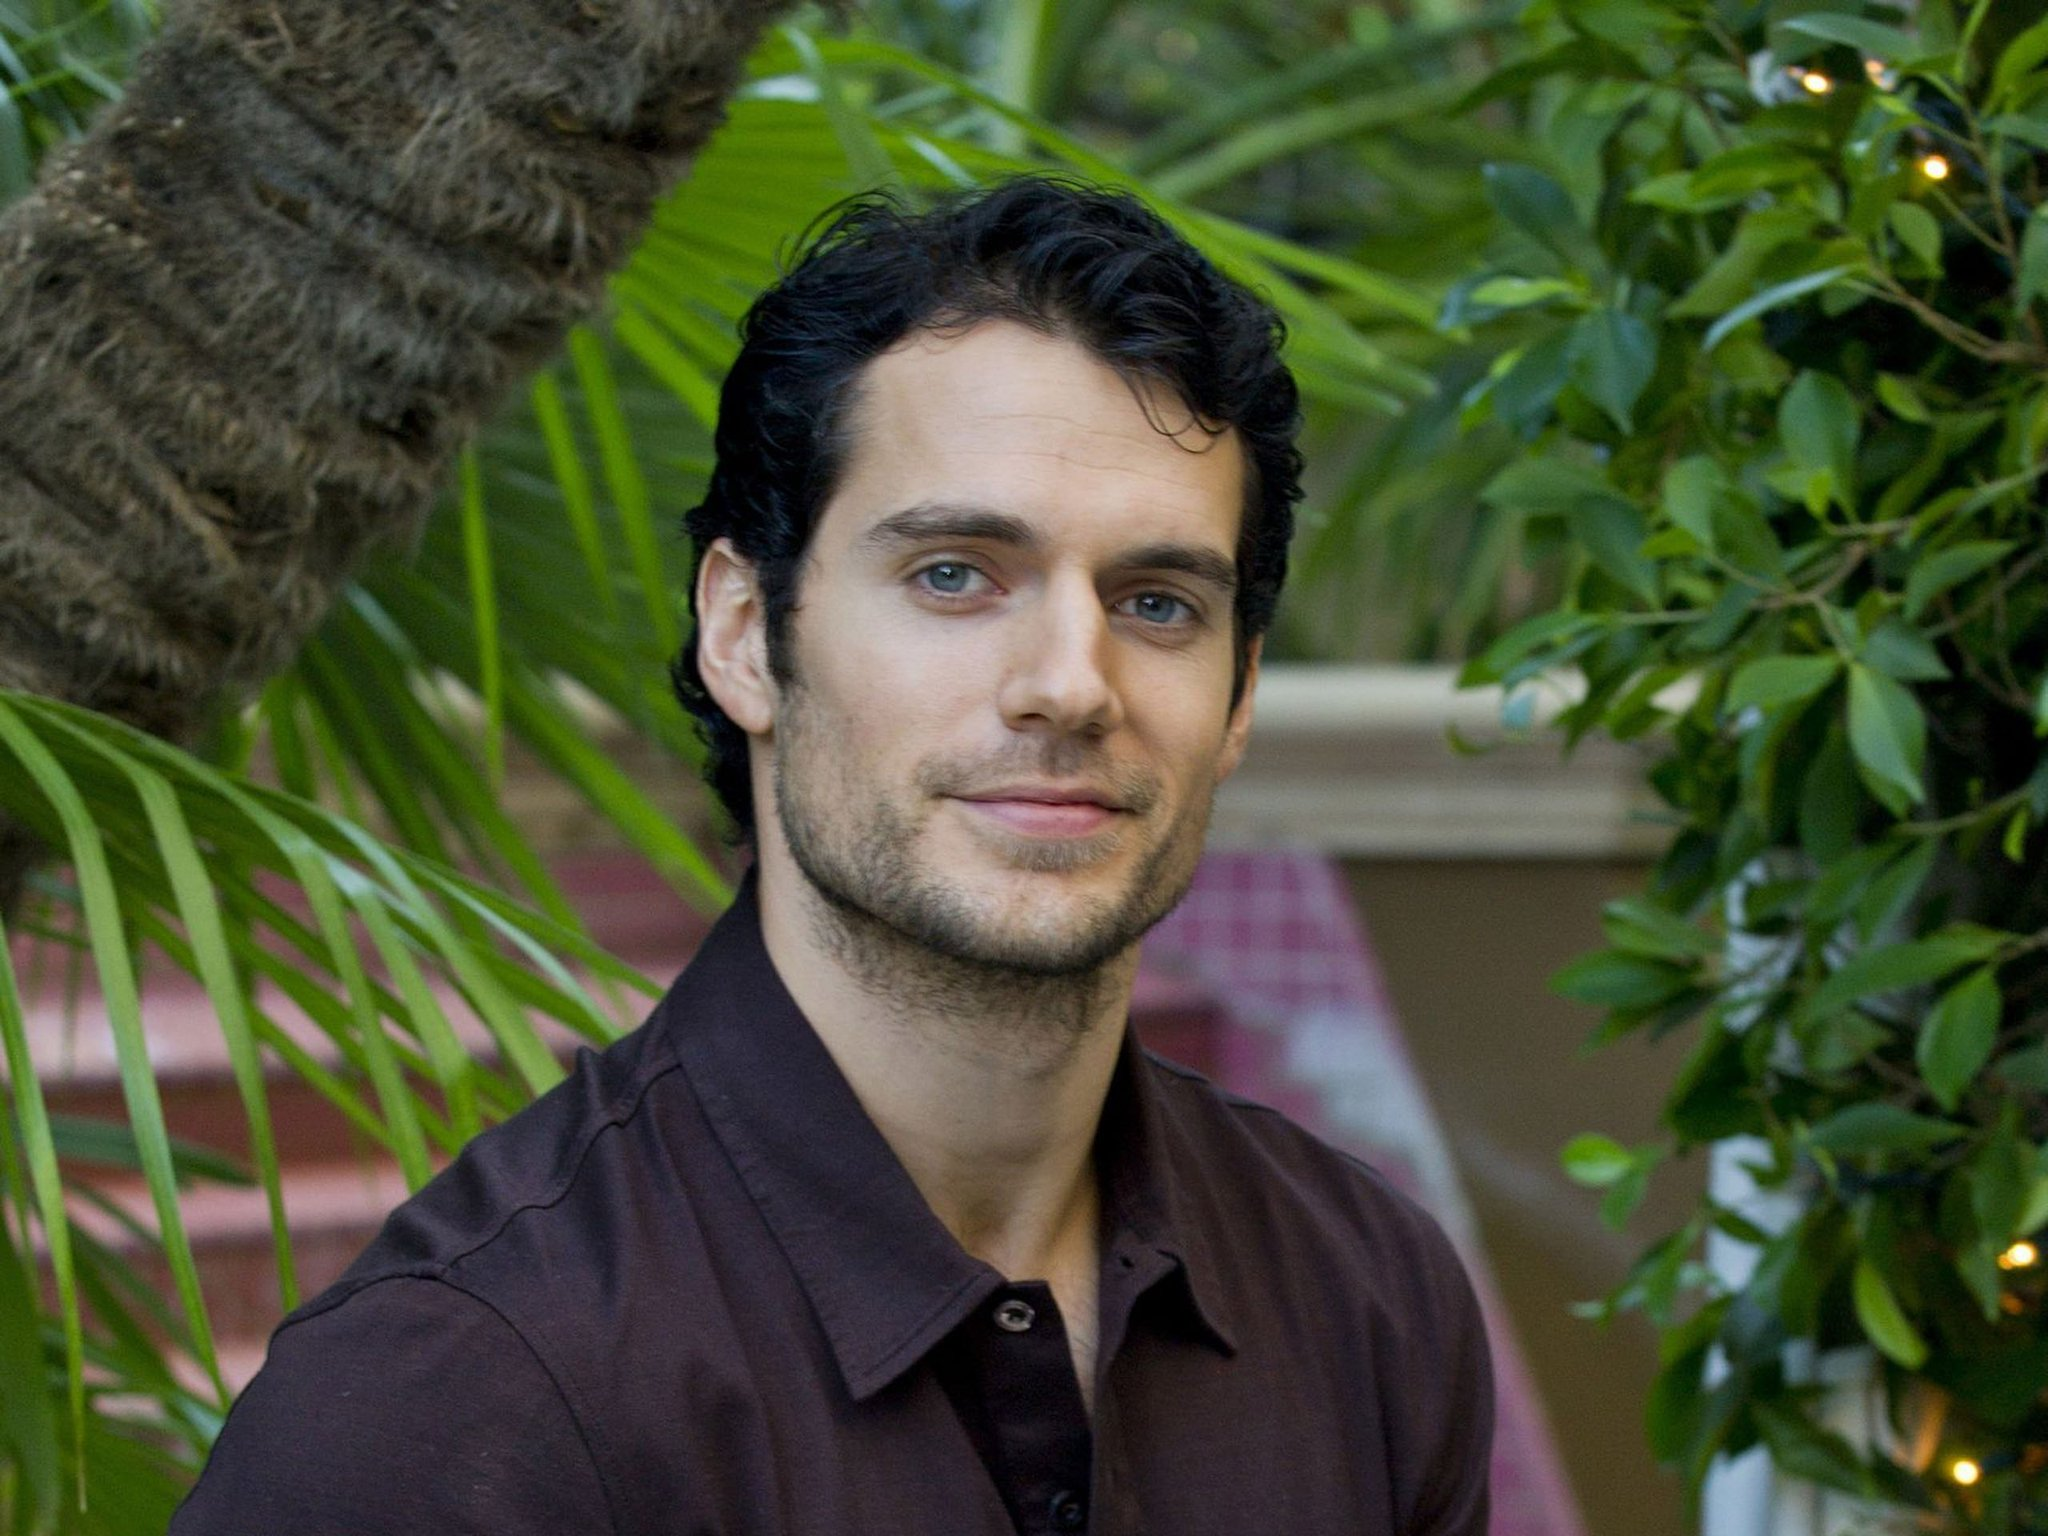 Happy Birthday To An Amazing Actor Henry Cavill!!